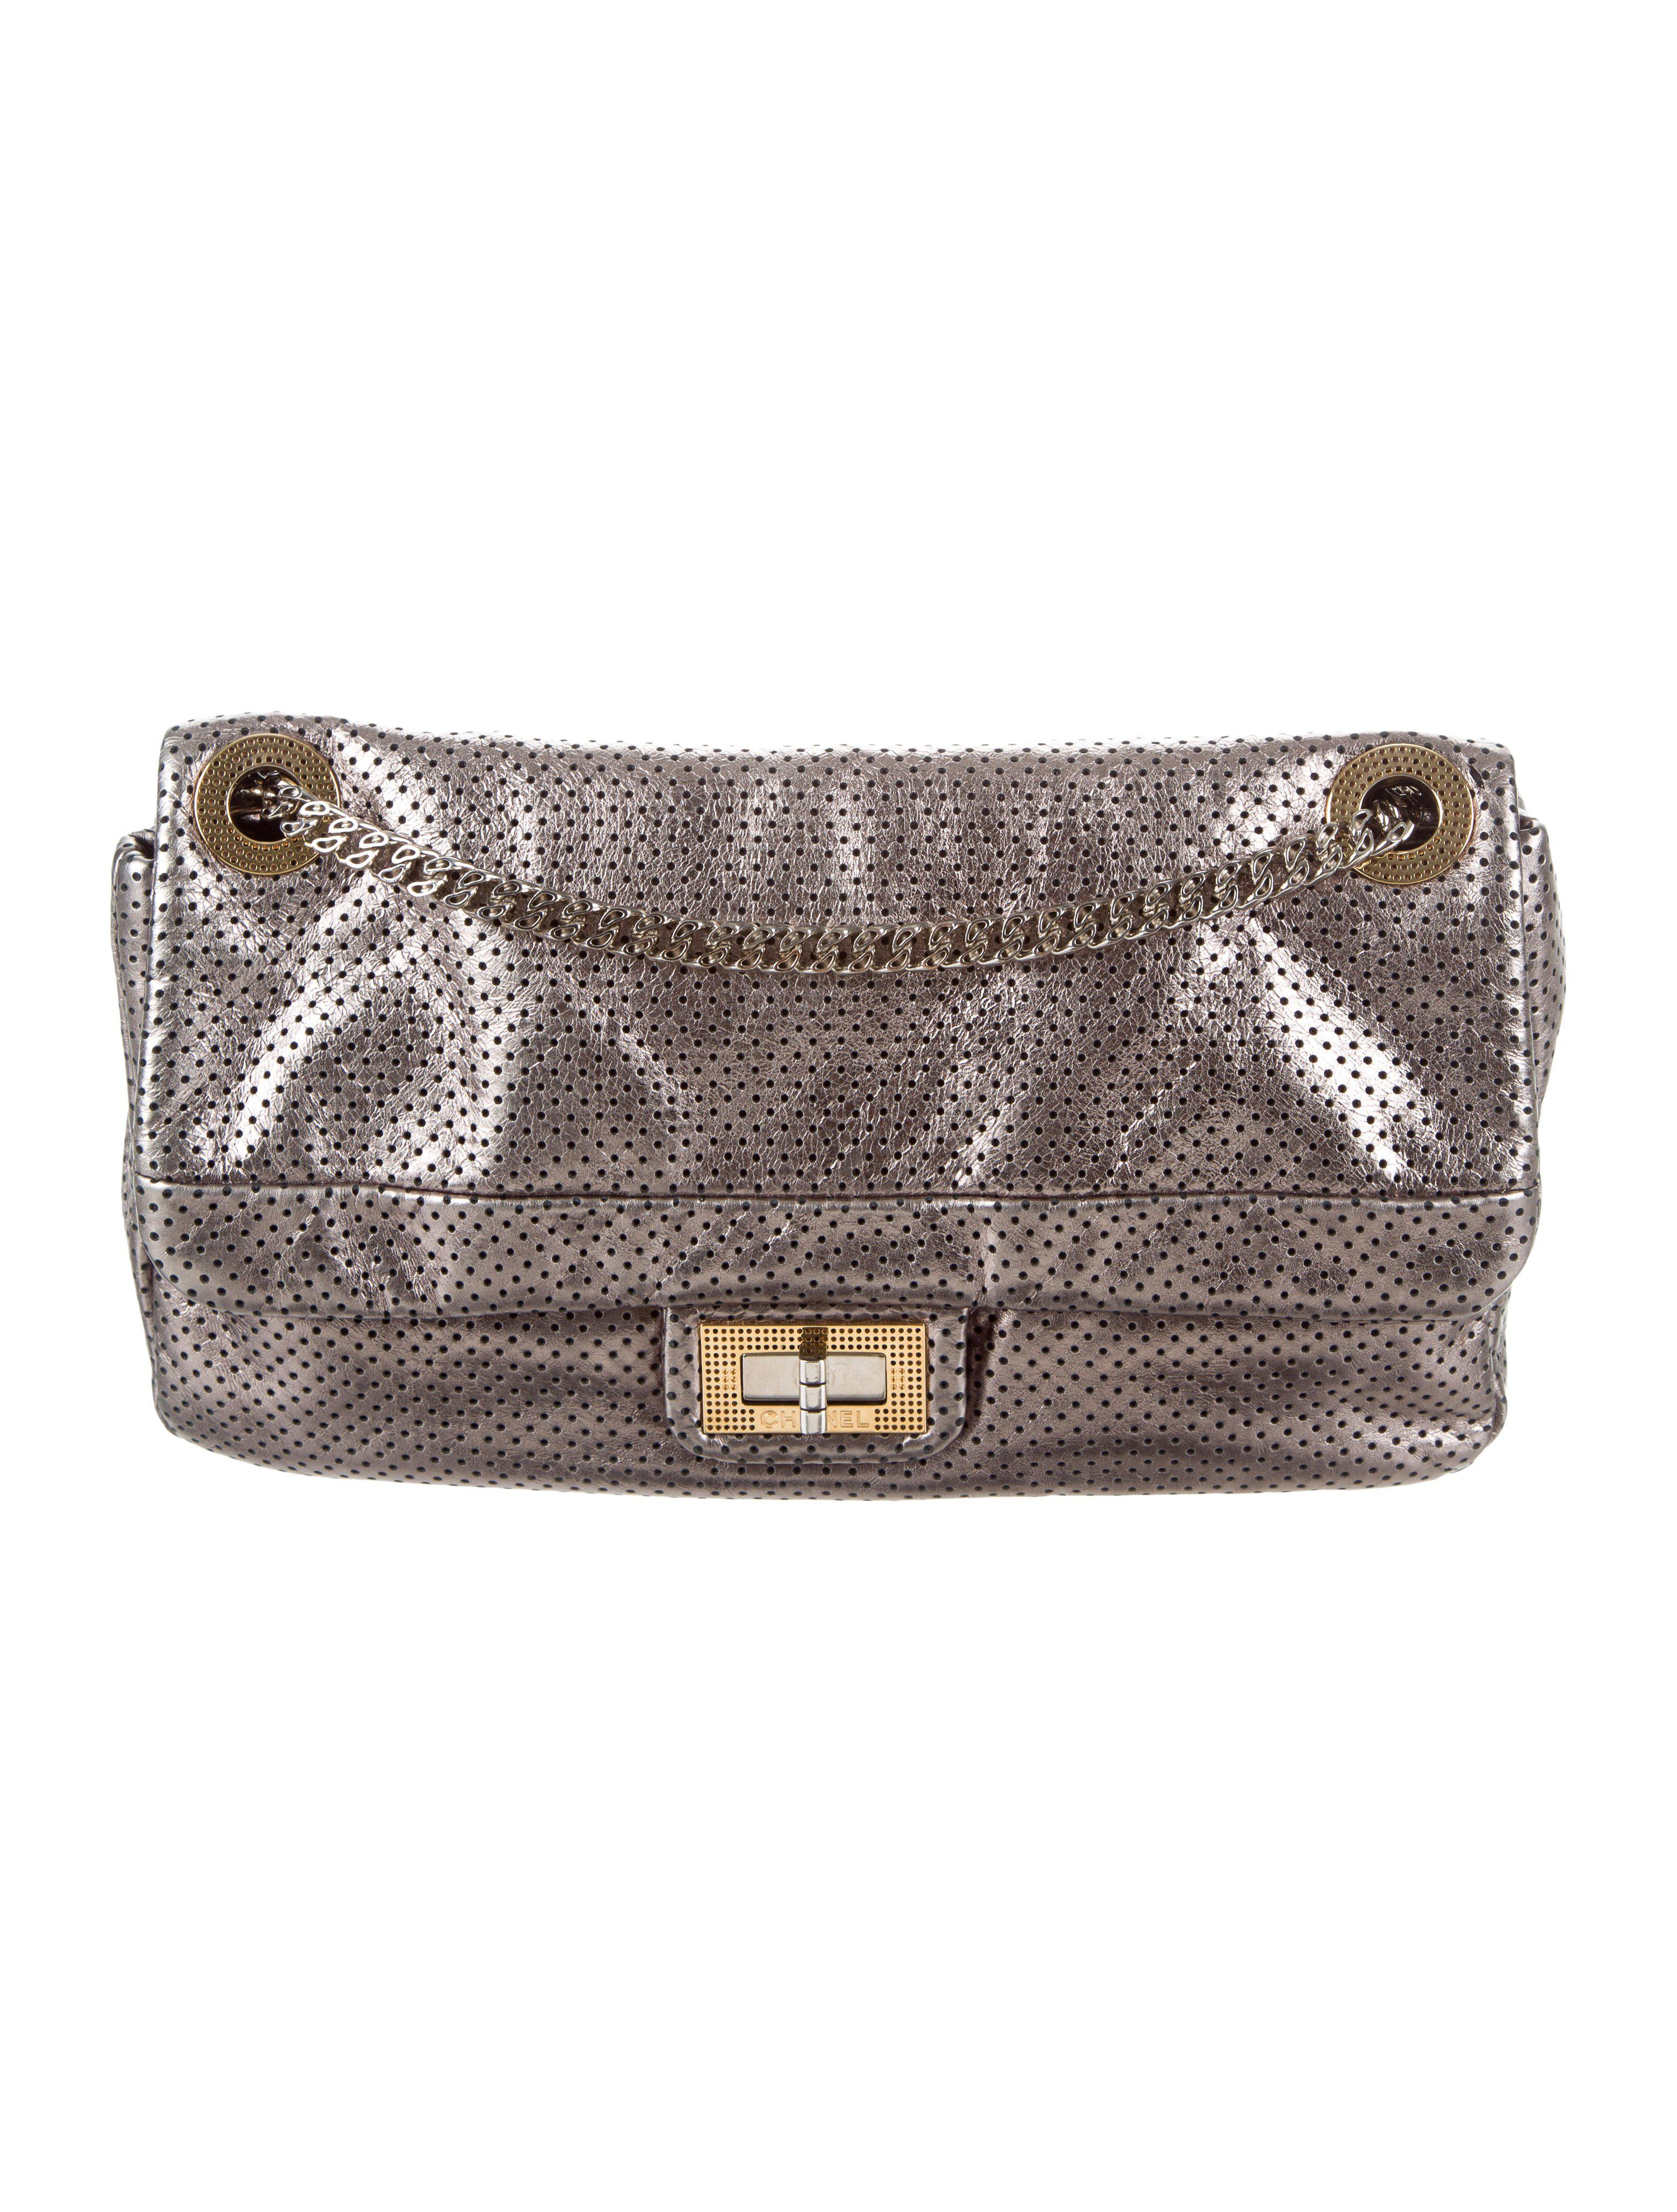 8fa2602a6aaf Lyst - Chanel Perforated Drill Flap Bag in Metallic